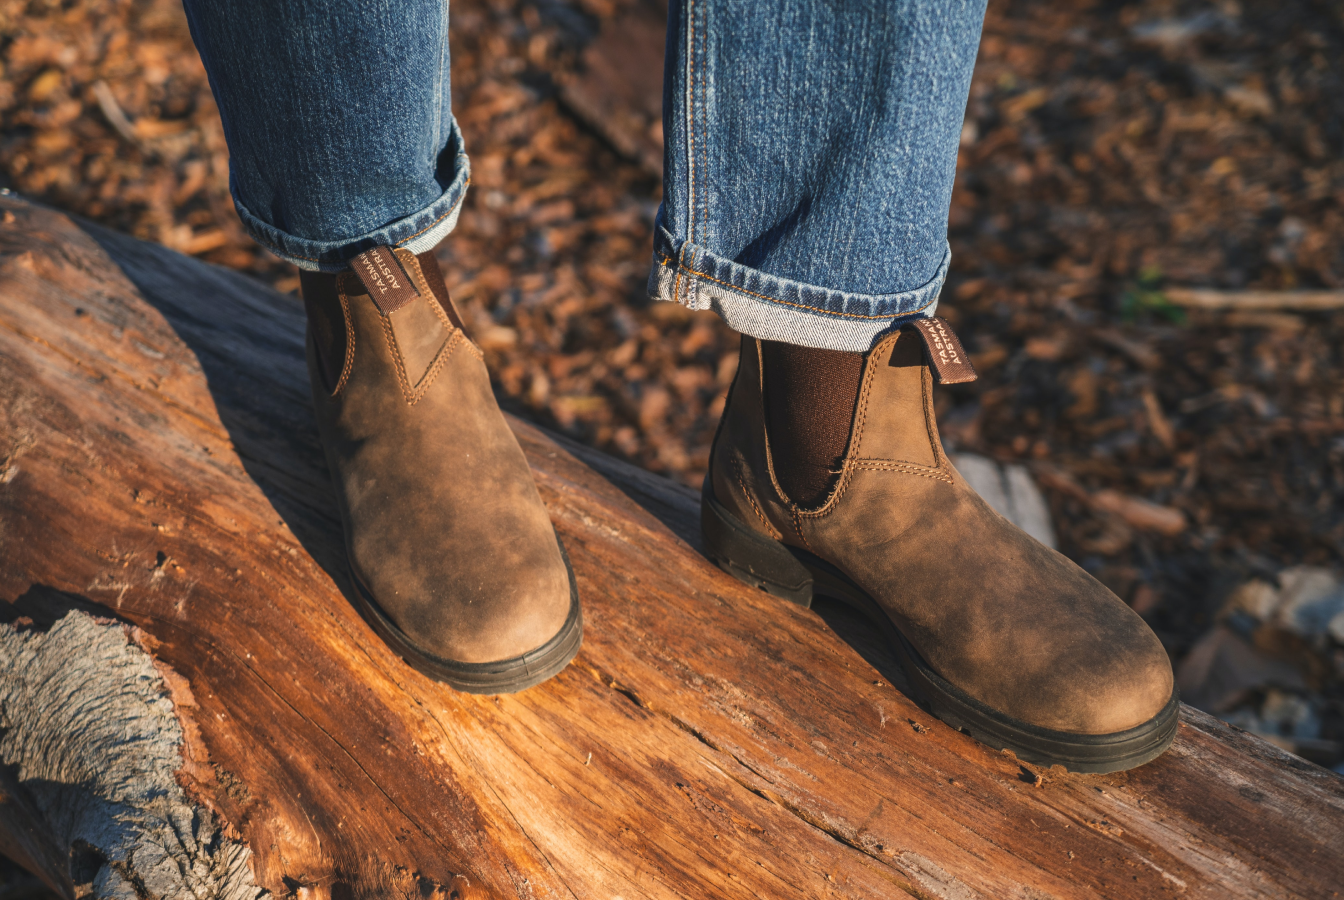 Person in leather boots standing on a log in the woods